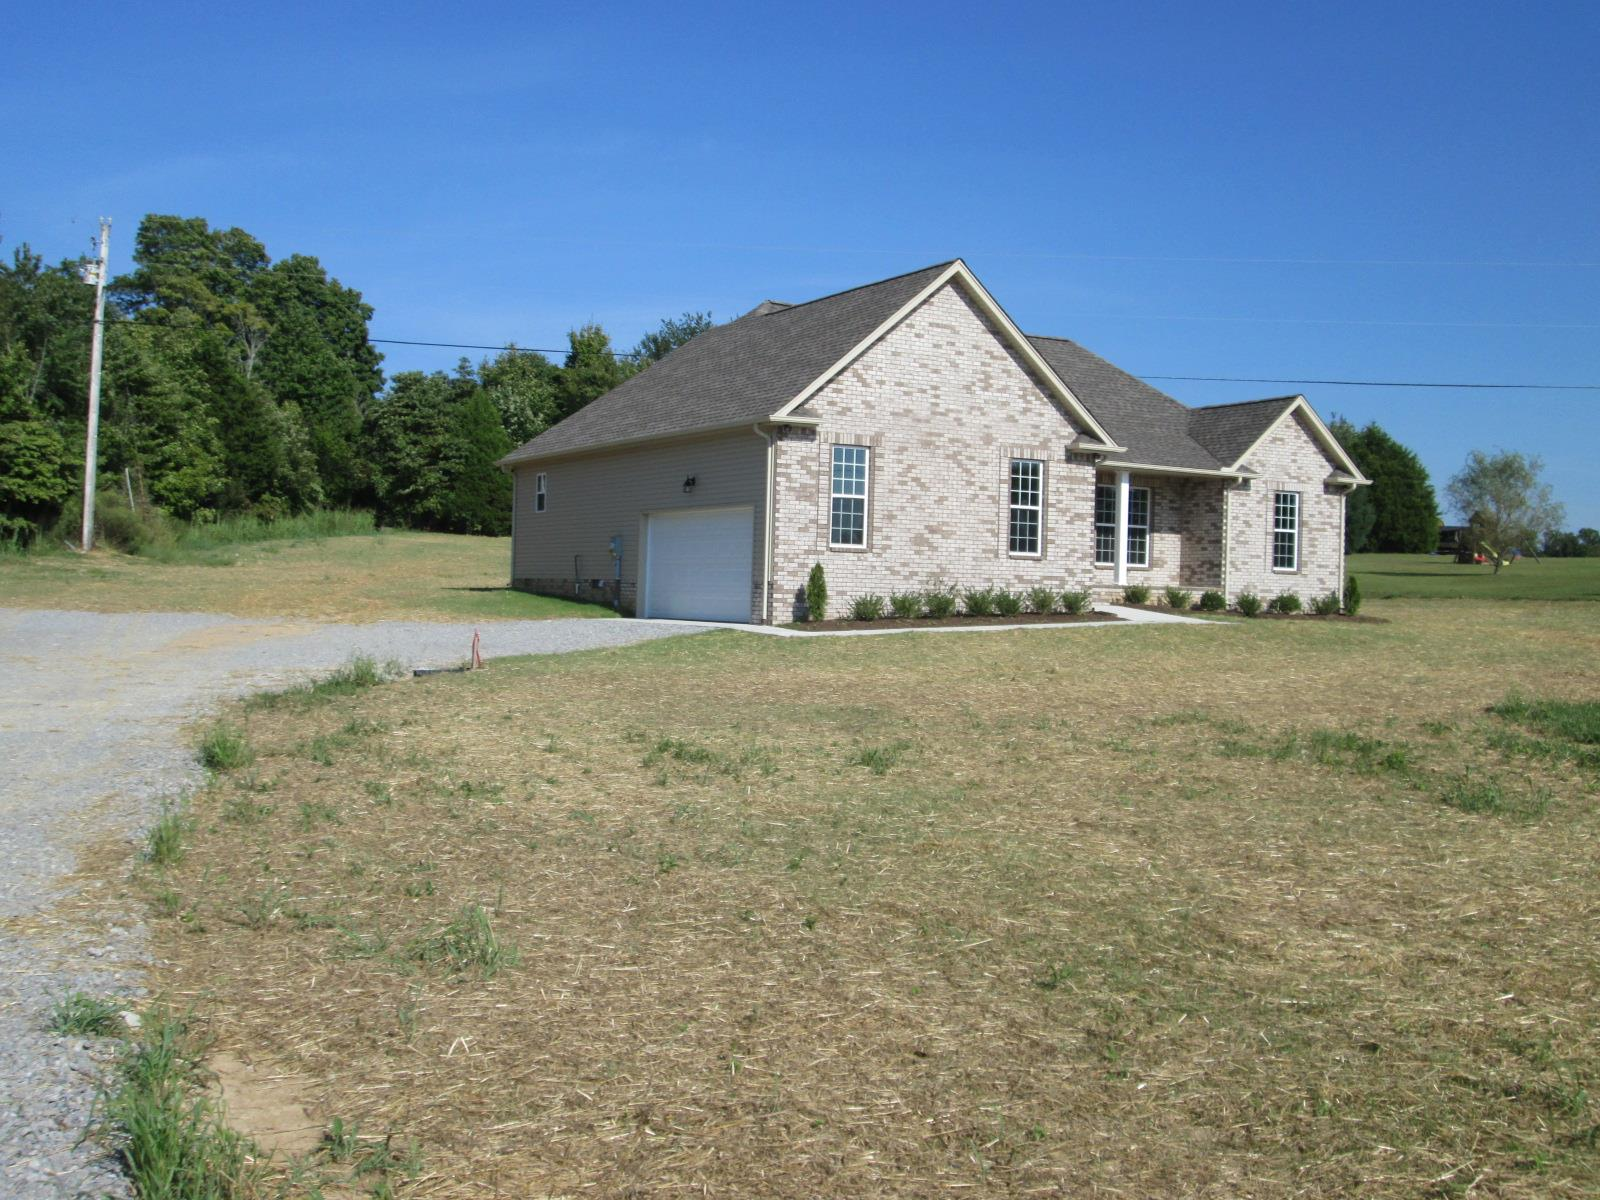 4623 Washington Rd, Greenbrier, TN 37073